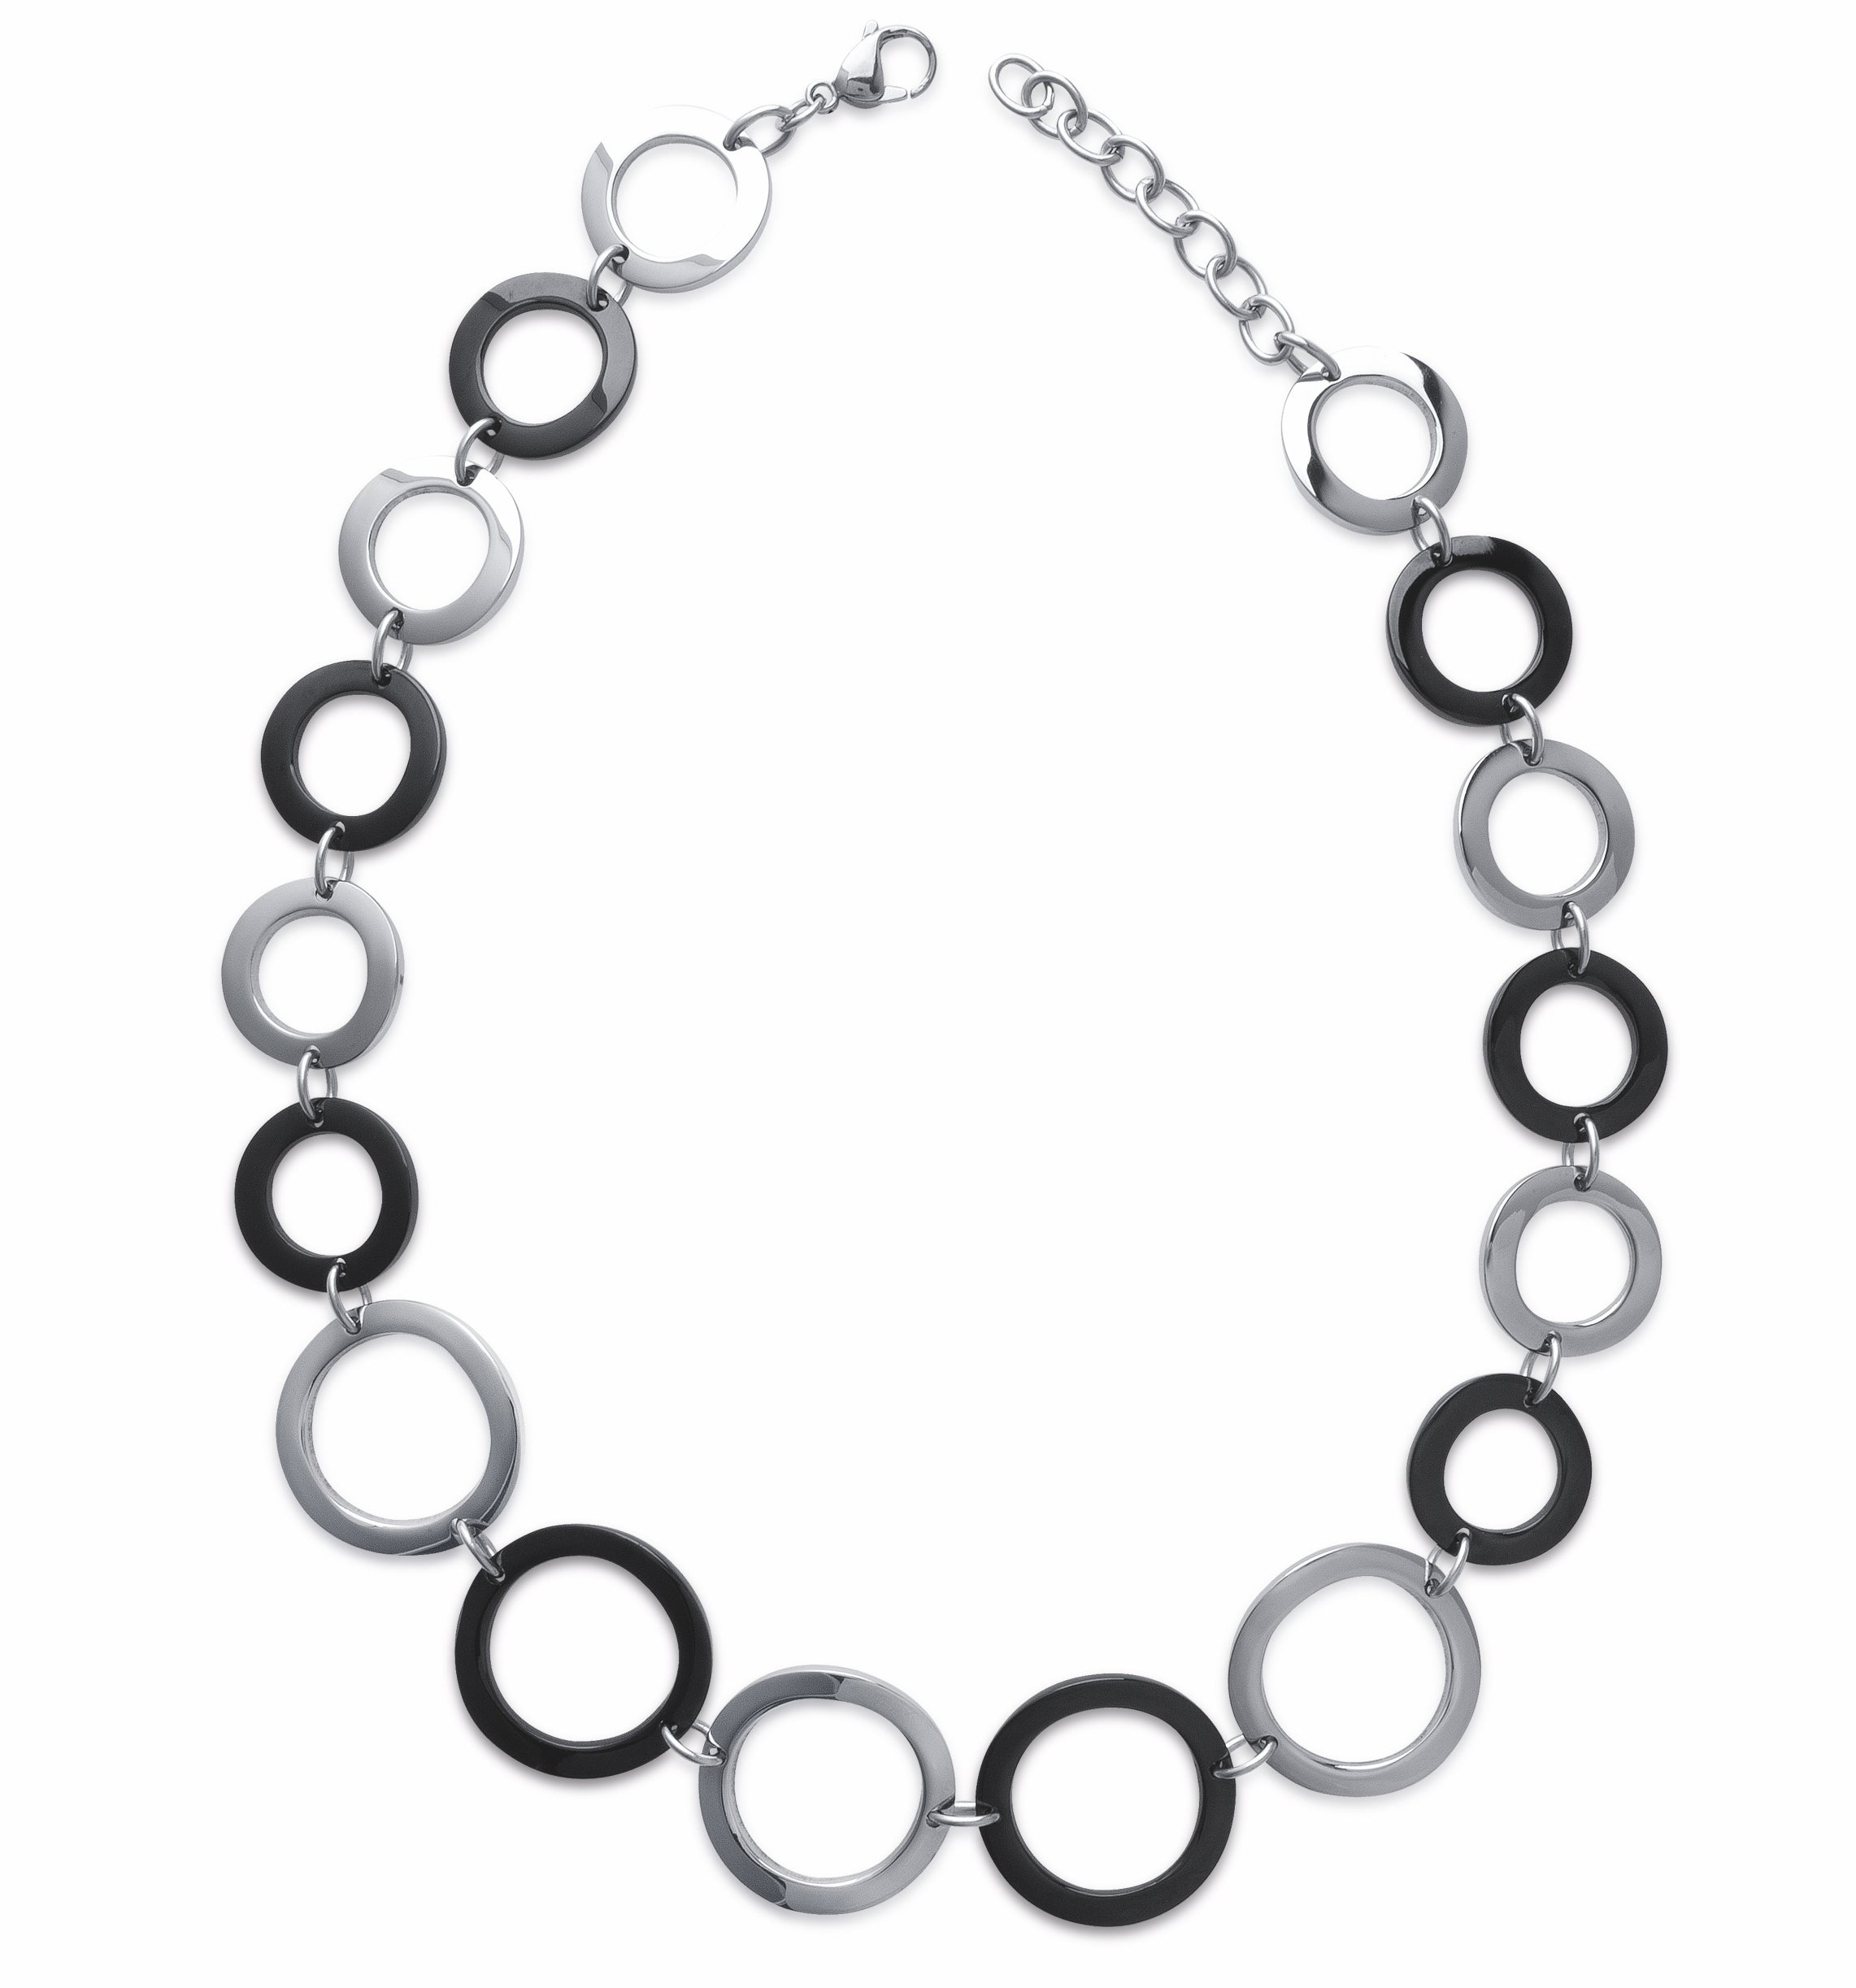 Black and Silver 60s Linked Necklace